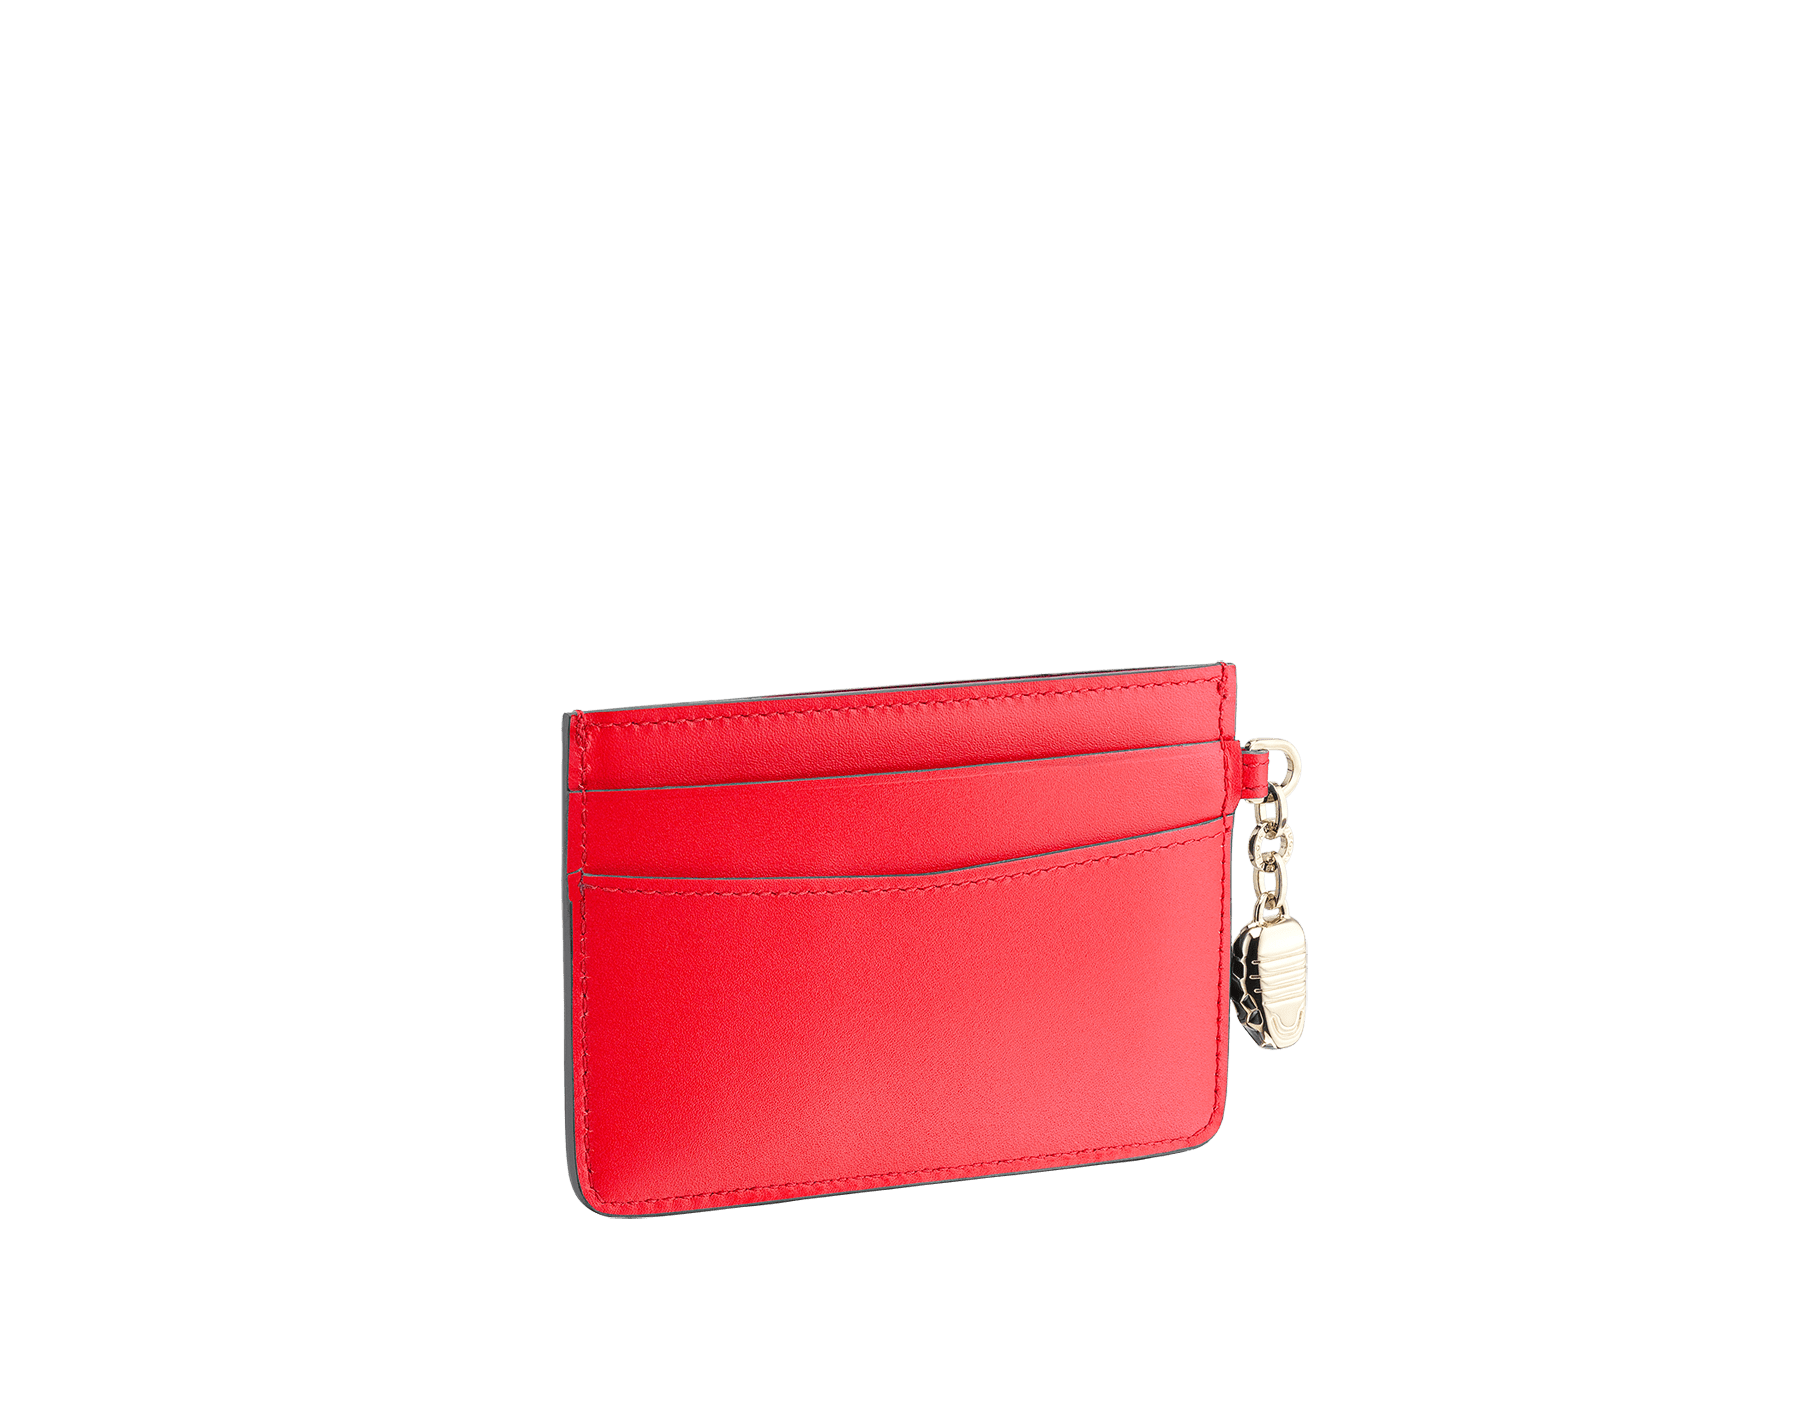 Serpenti Forever credit card holder in sea star coral and pink spinel calf leather. Iconic snakehead charm in black and white enamel, with green malachite enamel eyes. 288019 image 2